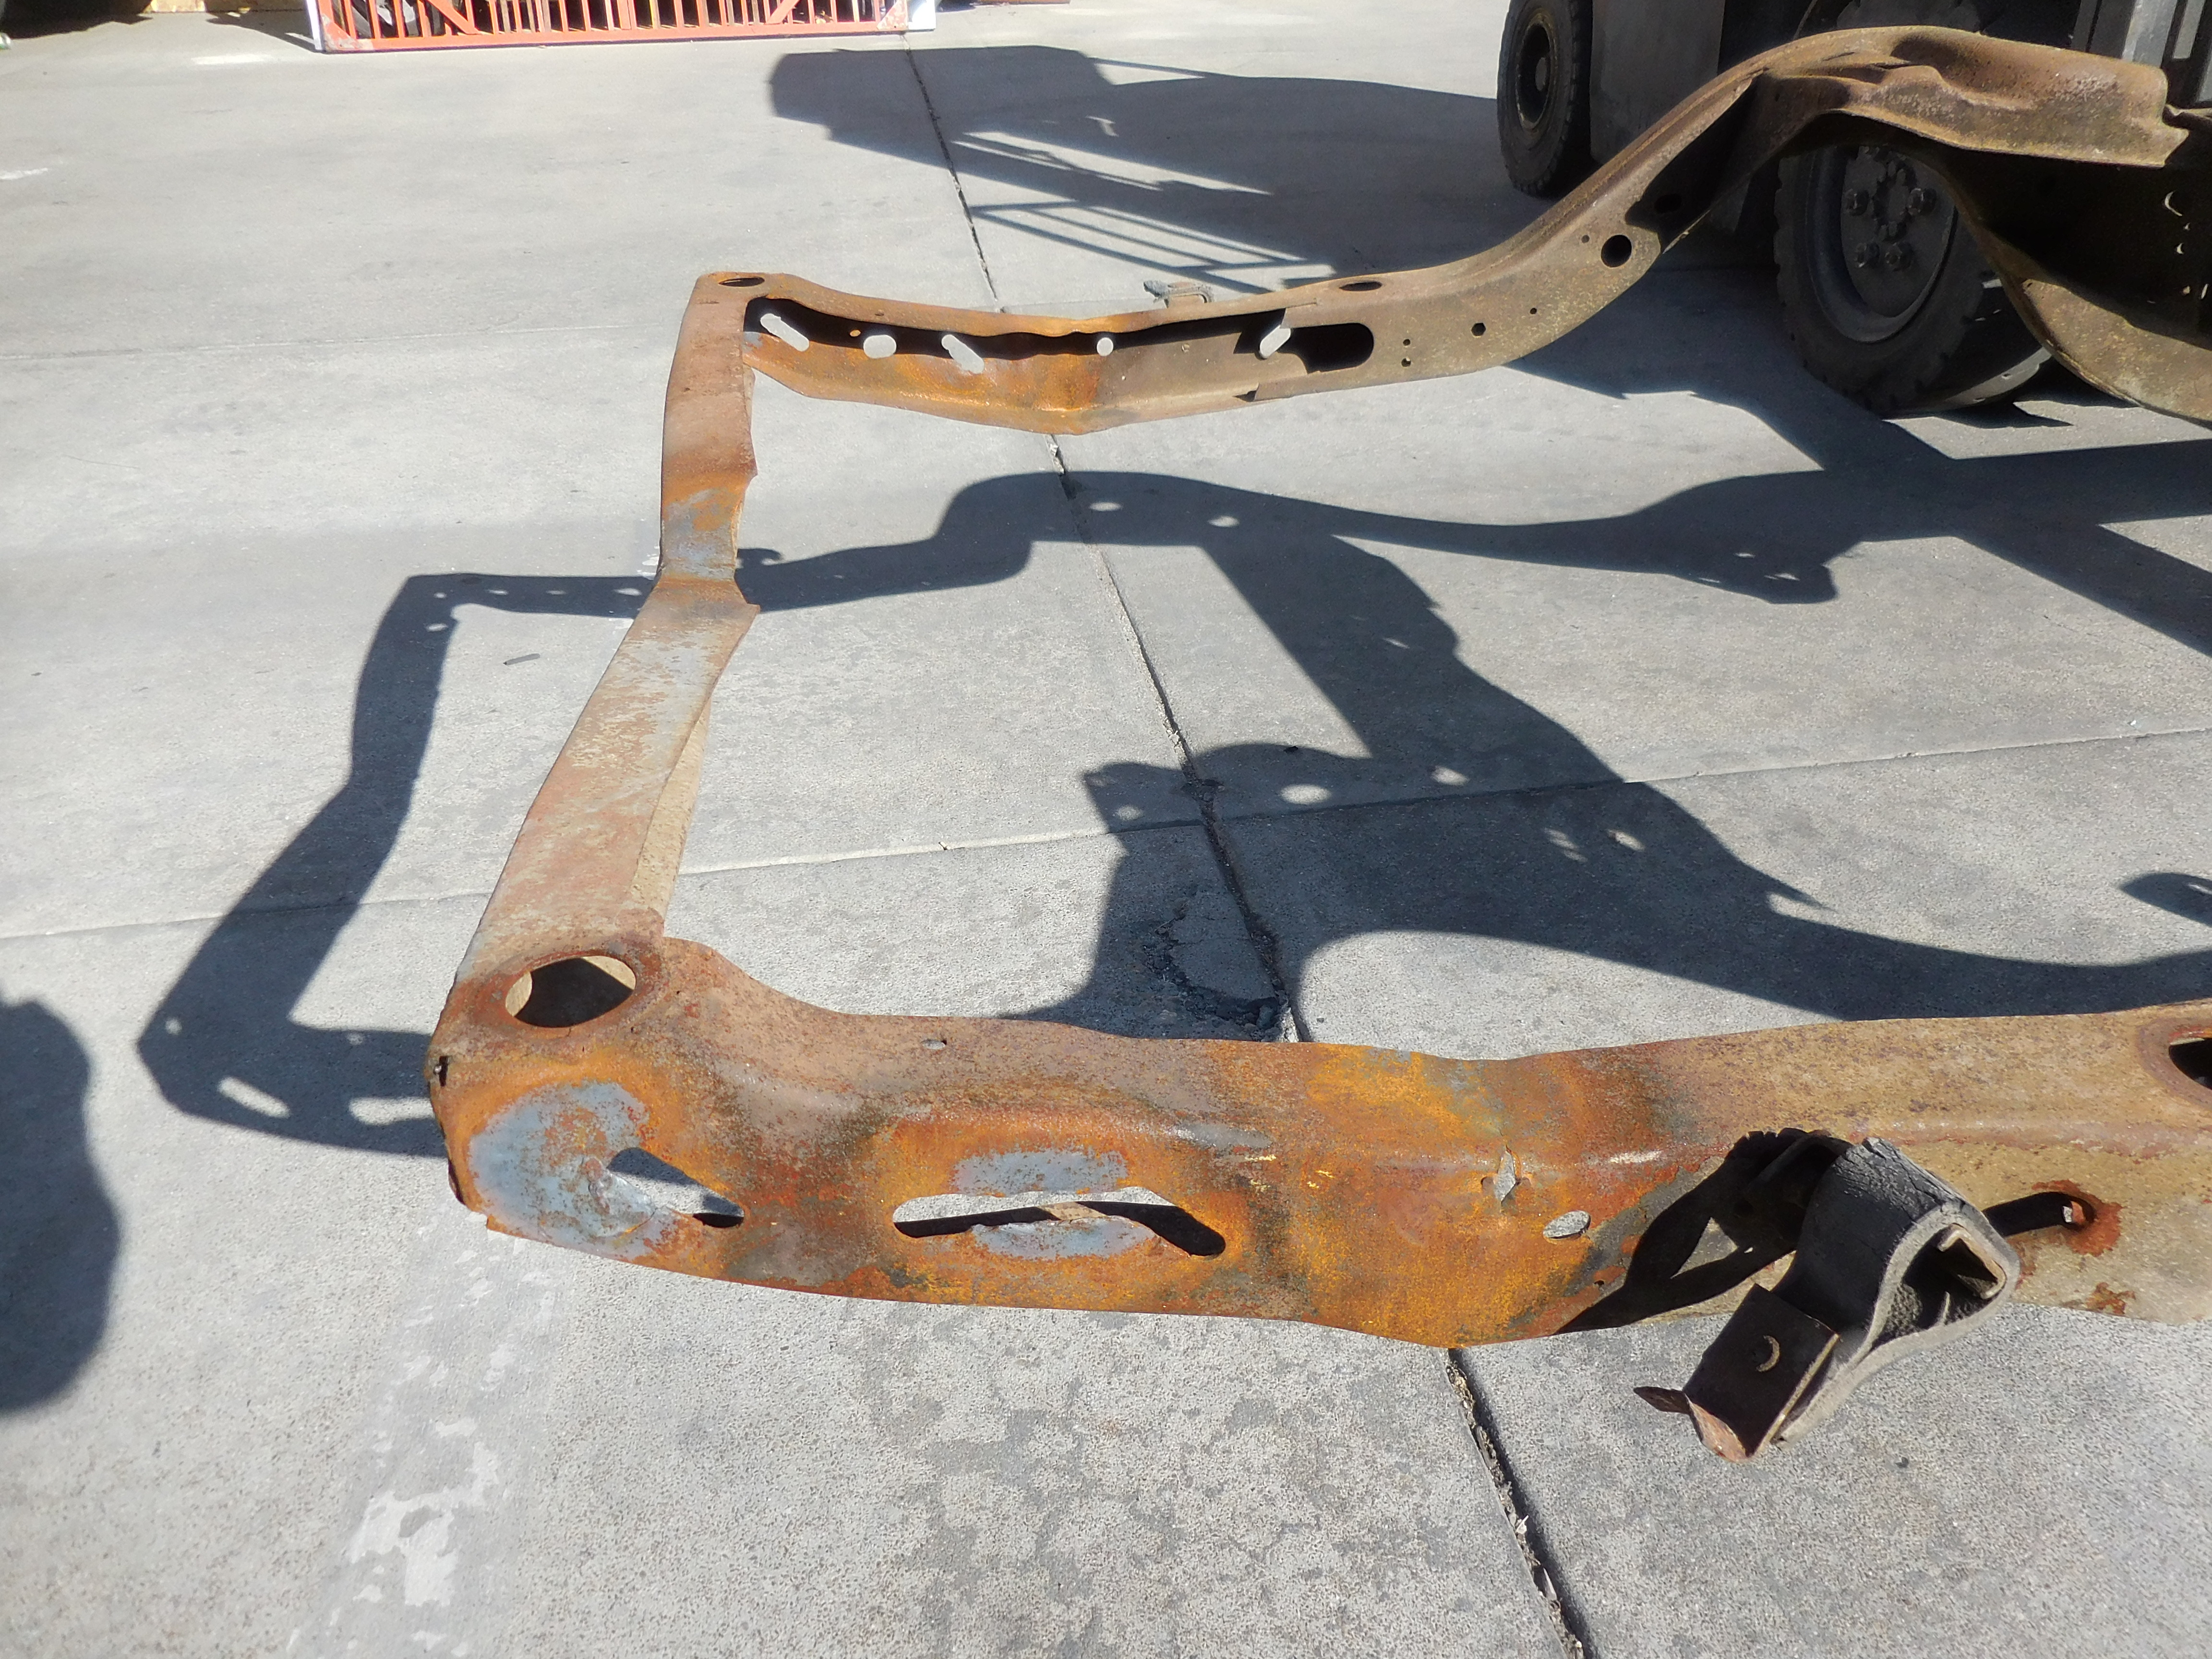 1968-1972 GM A-Body Convertible Chassis Frame | GM Sports